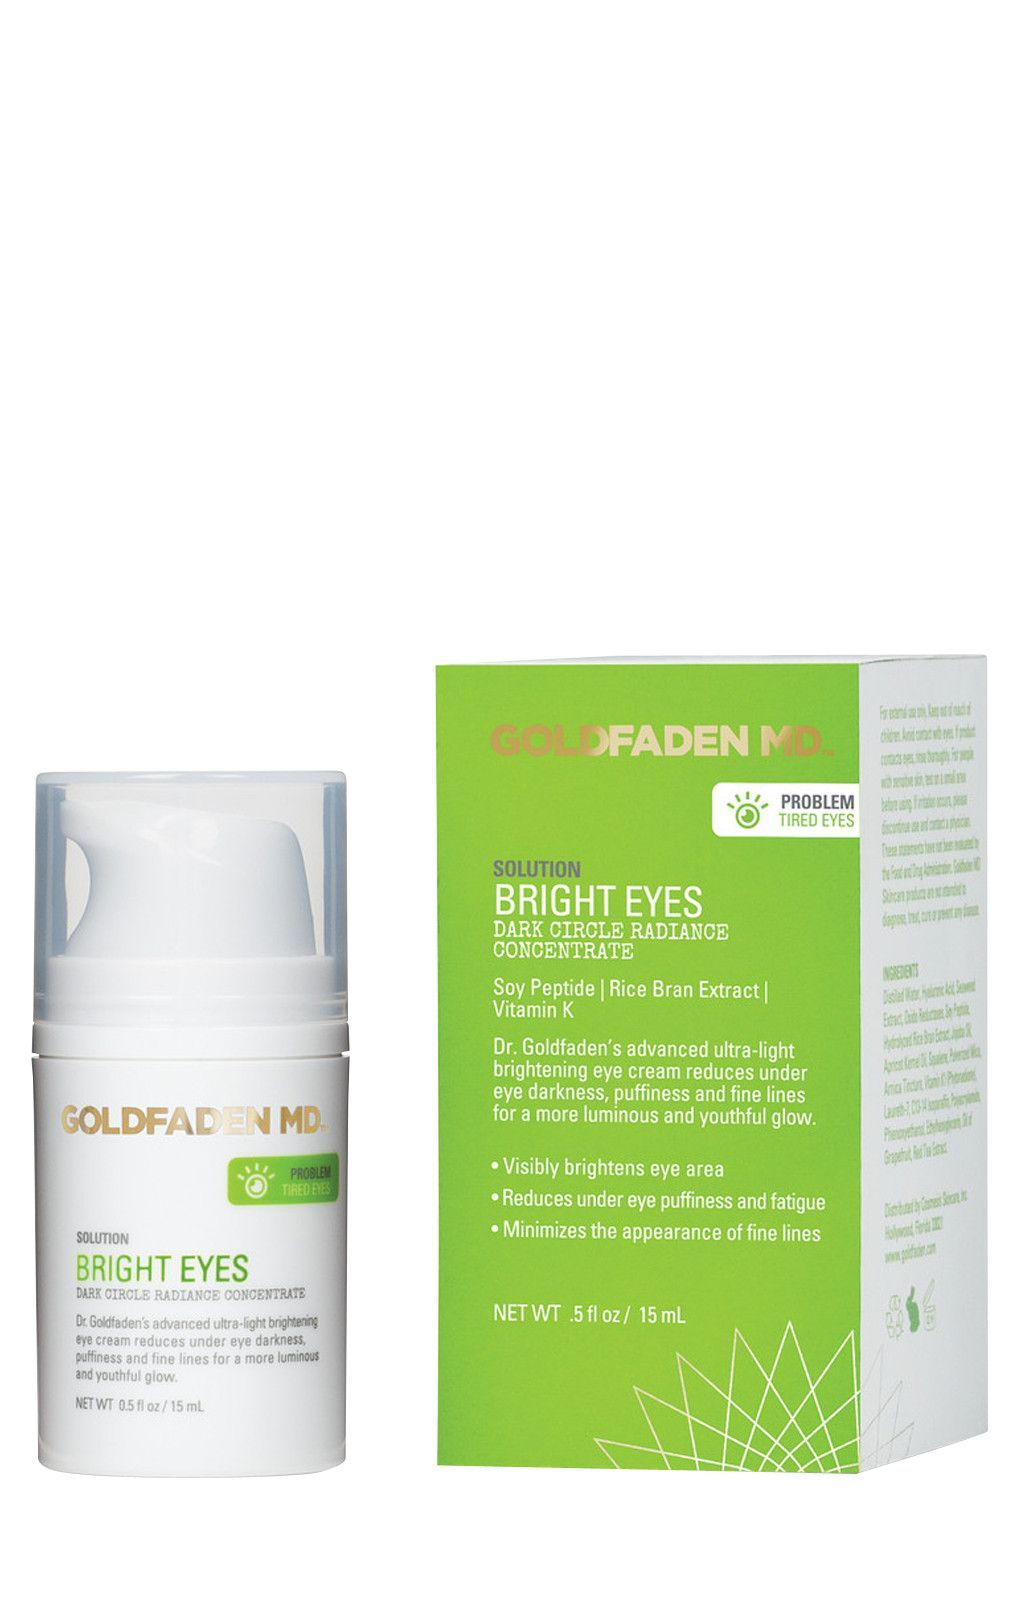 Bright Eyes Dark Circle Radiance Concentrate Bright